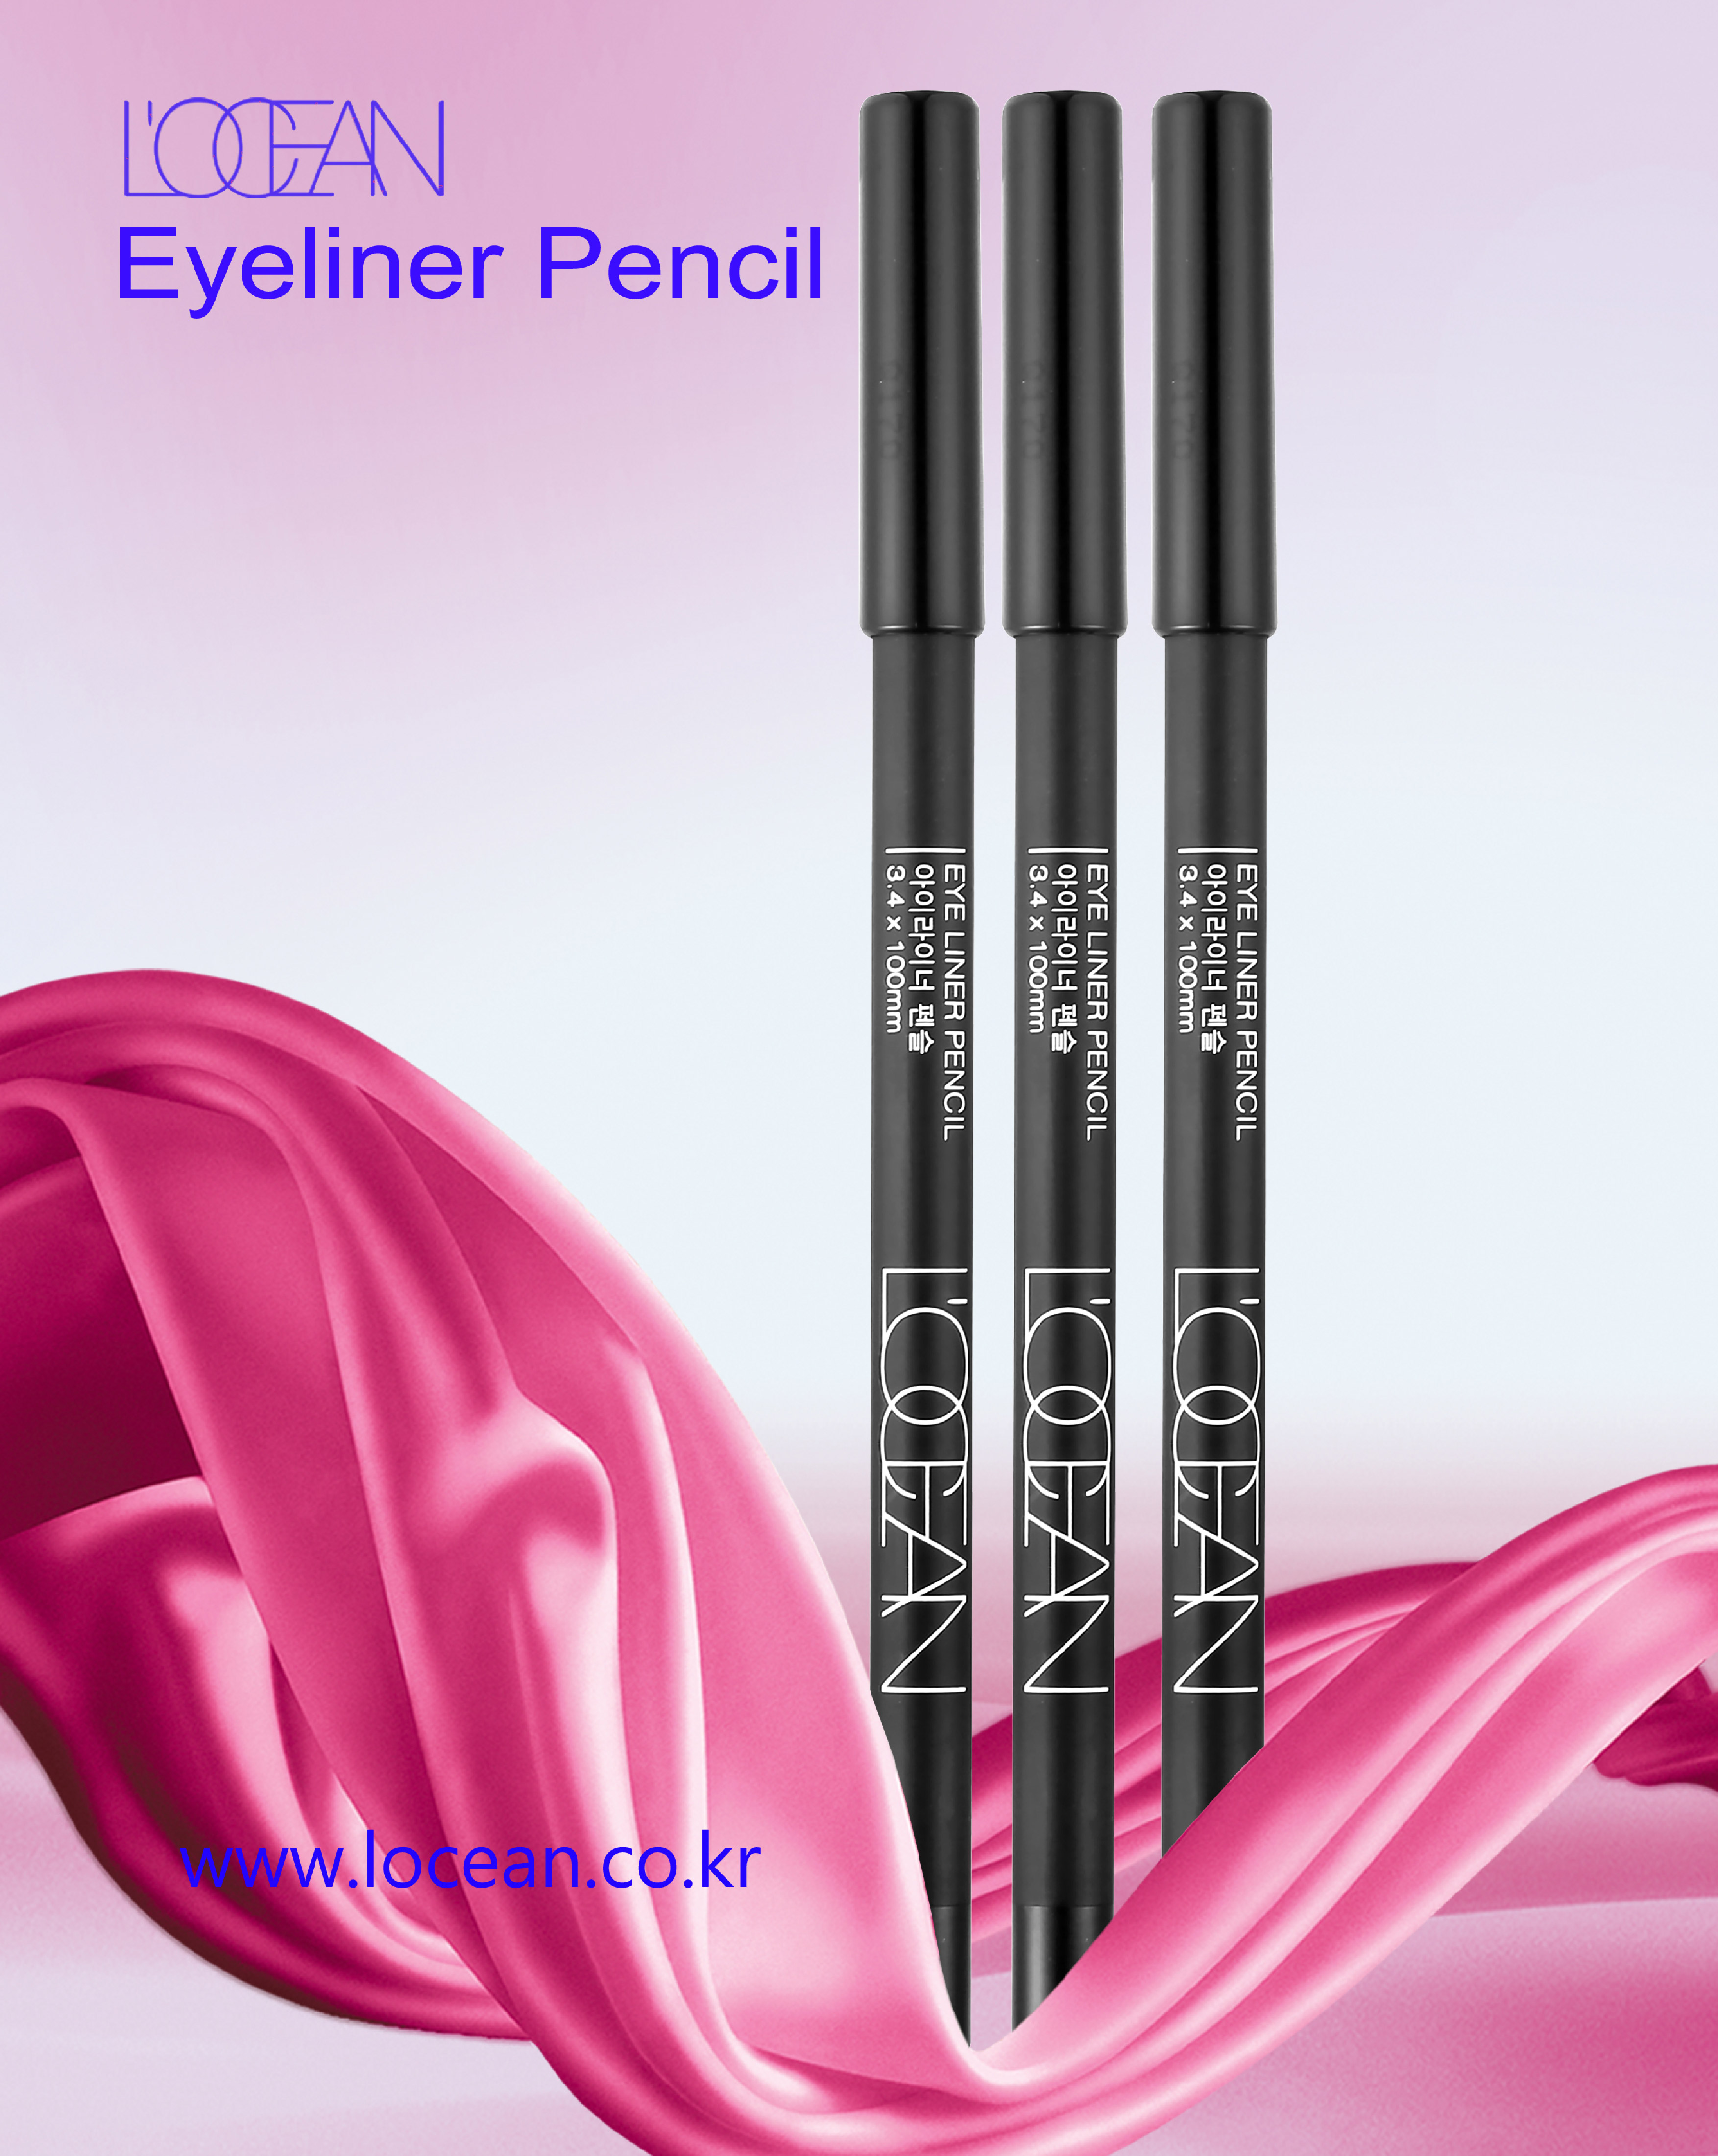 Chì Viền Mí L'ocean Eye Liner Pencil